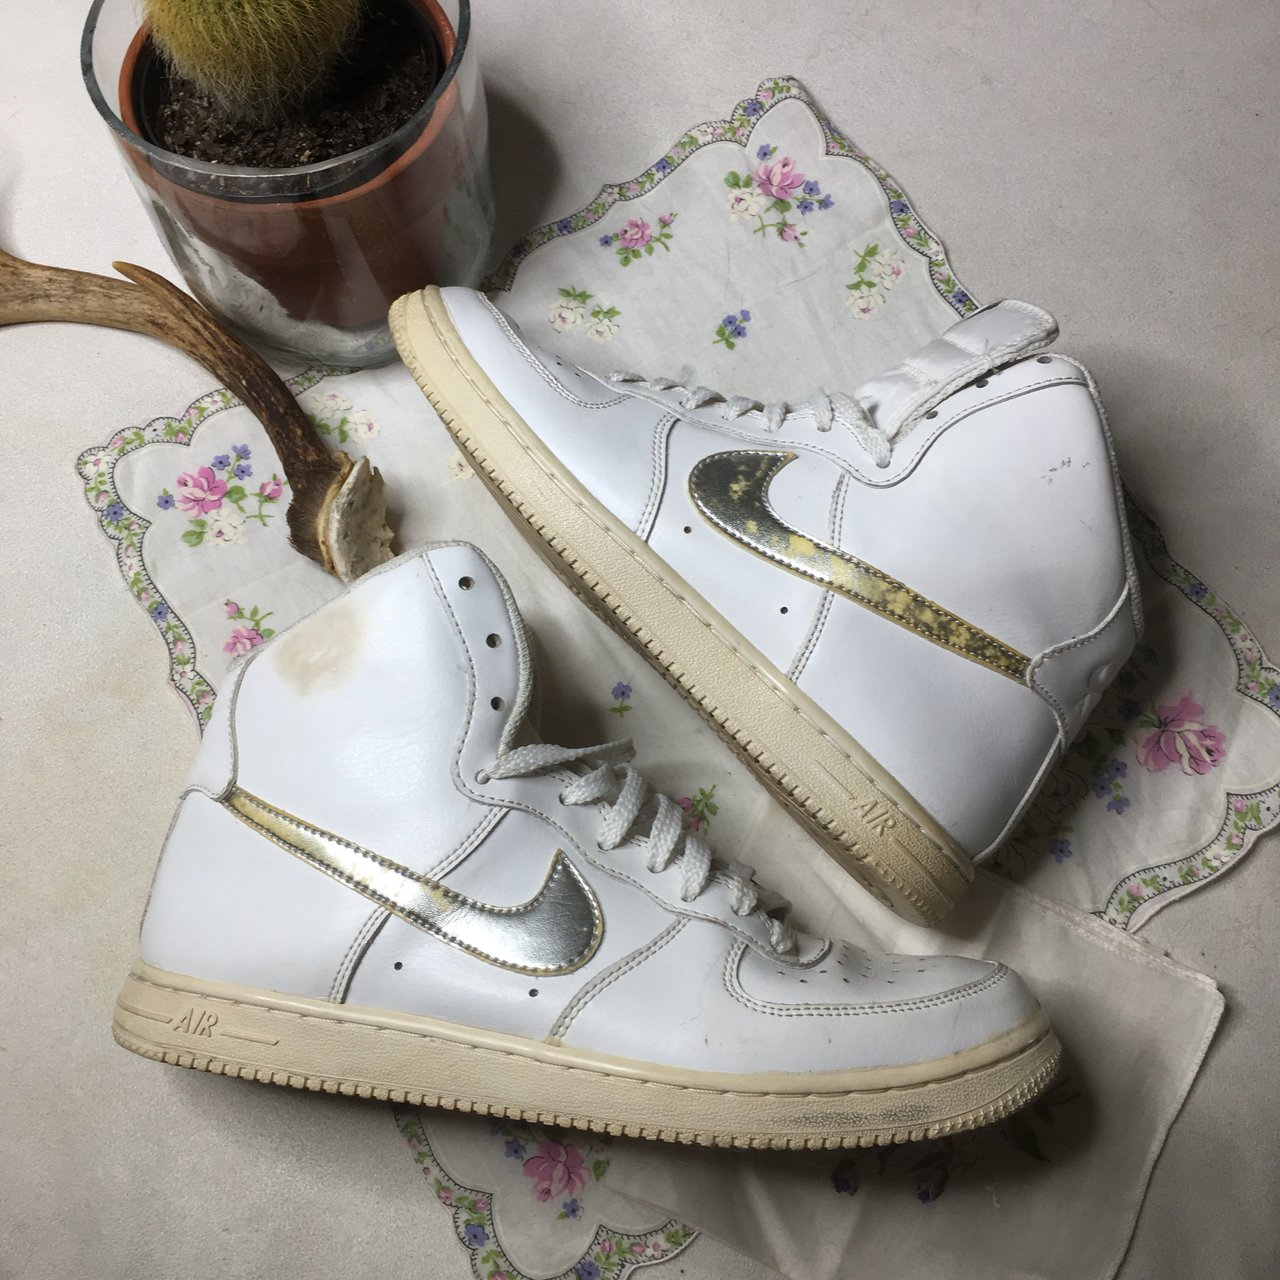 5755f69c1e48 Air force 1 size 5.5 good condition still a lot of wear left - Depop